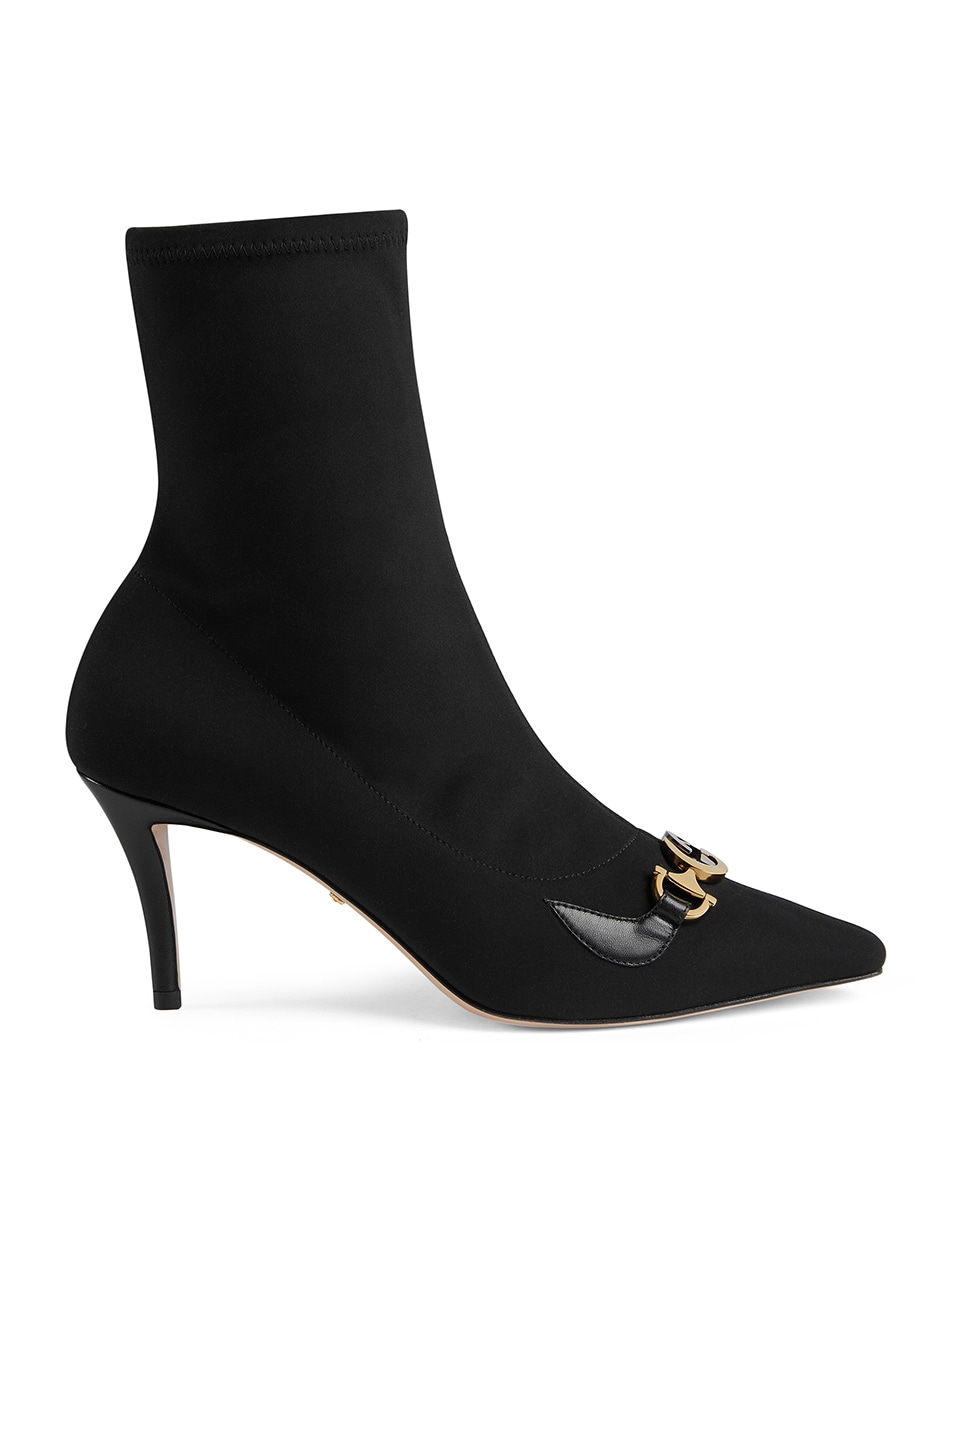 Image 1 of Gucci Mid Heel Ankle Booties in Black